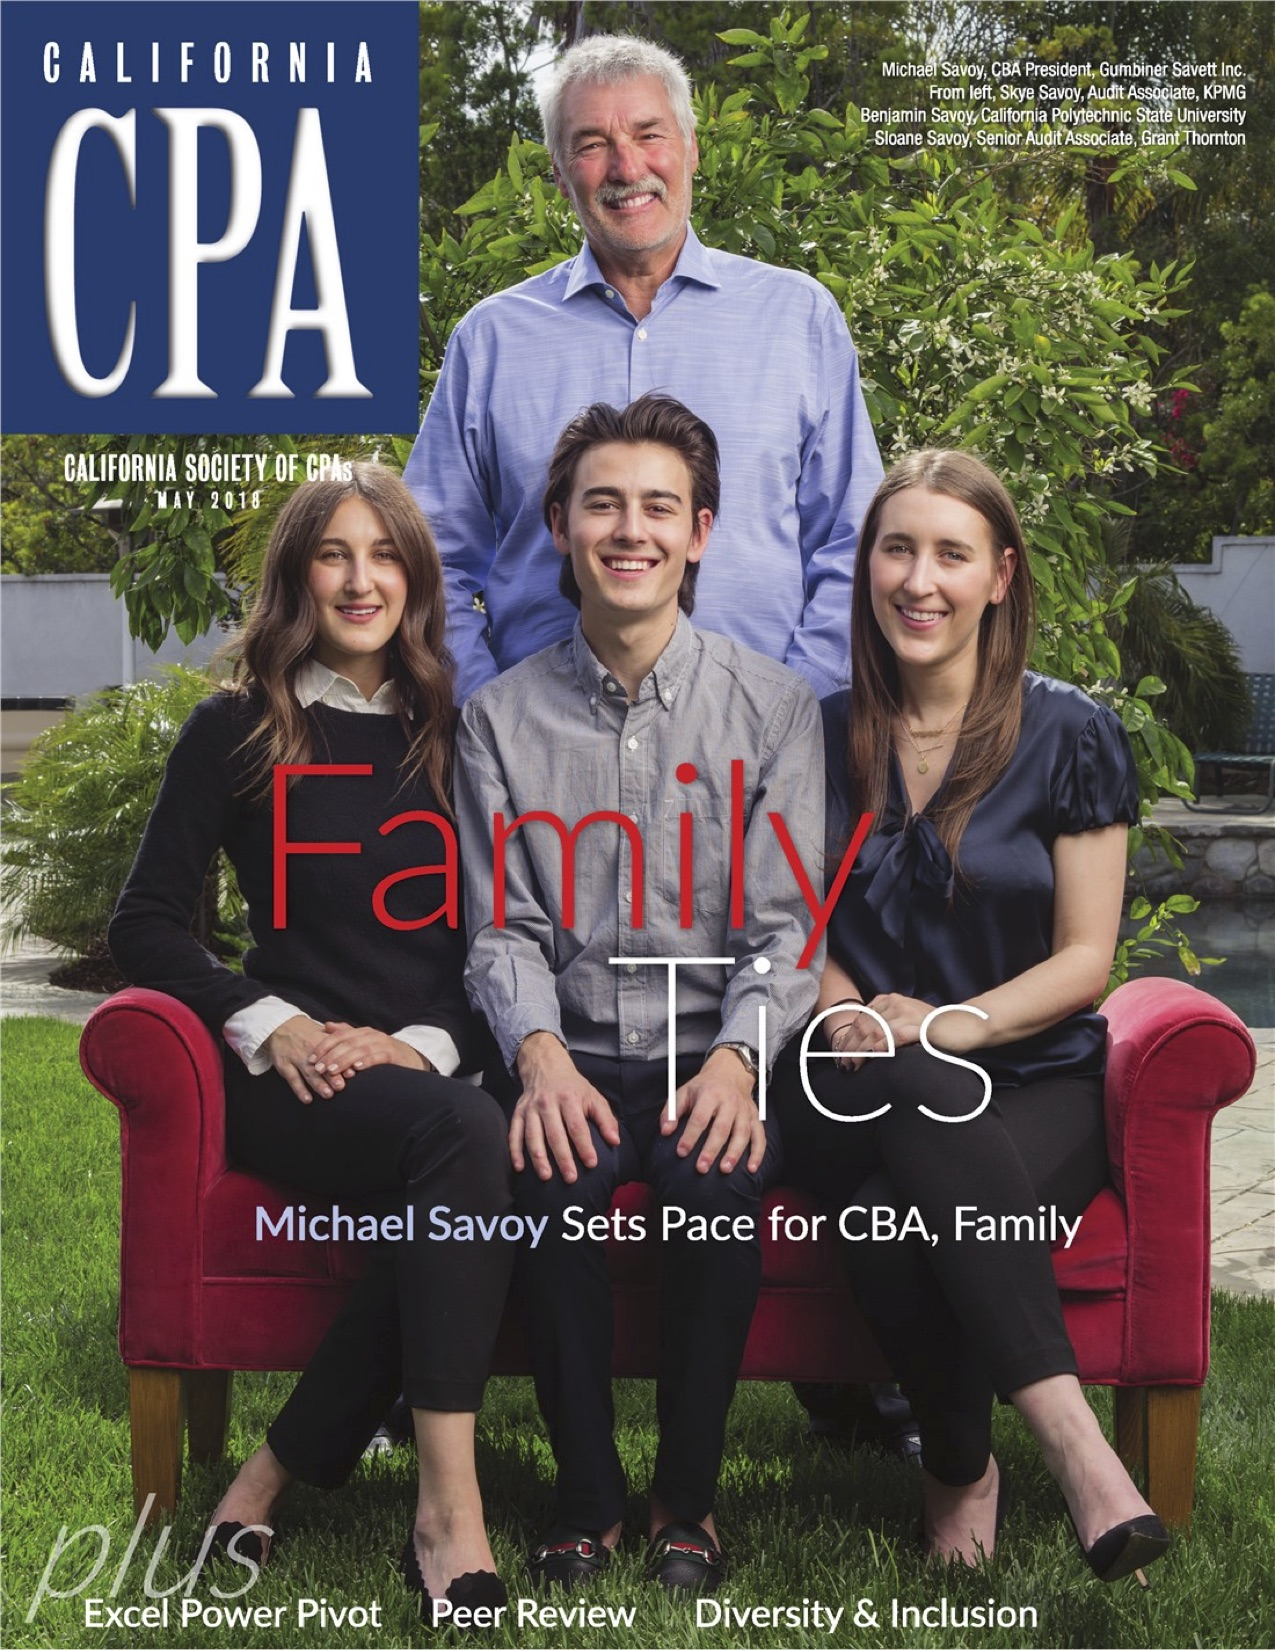 California CPA - May 2018 - Cover.jpg